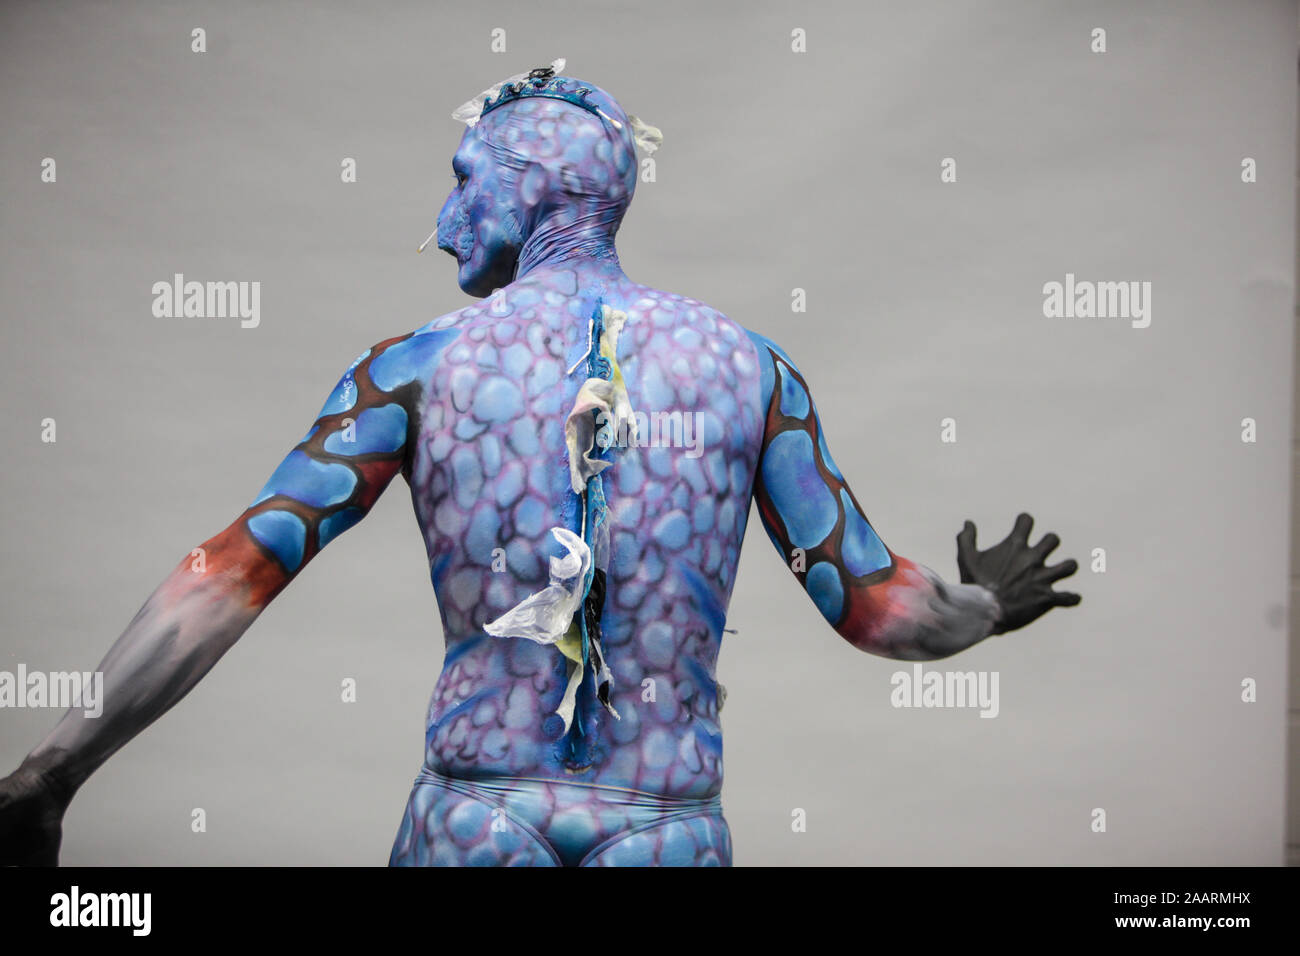 Body Painting Event High Resolution Stock Photography And Images Alamy